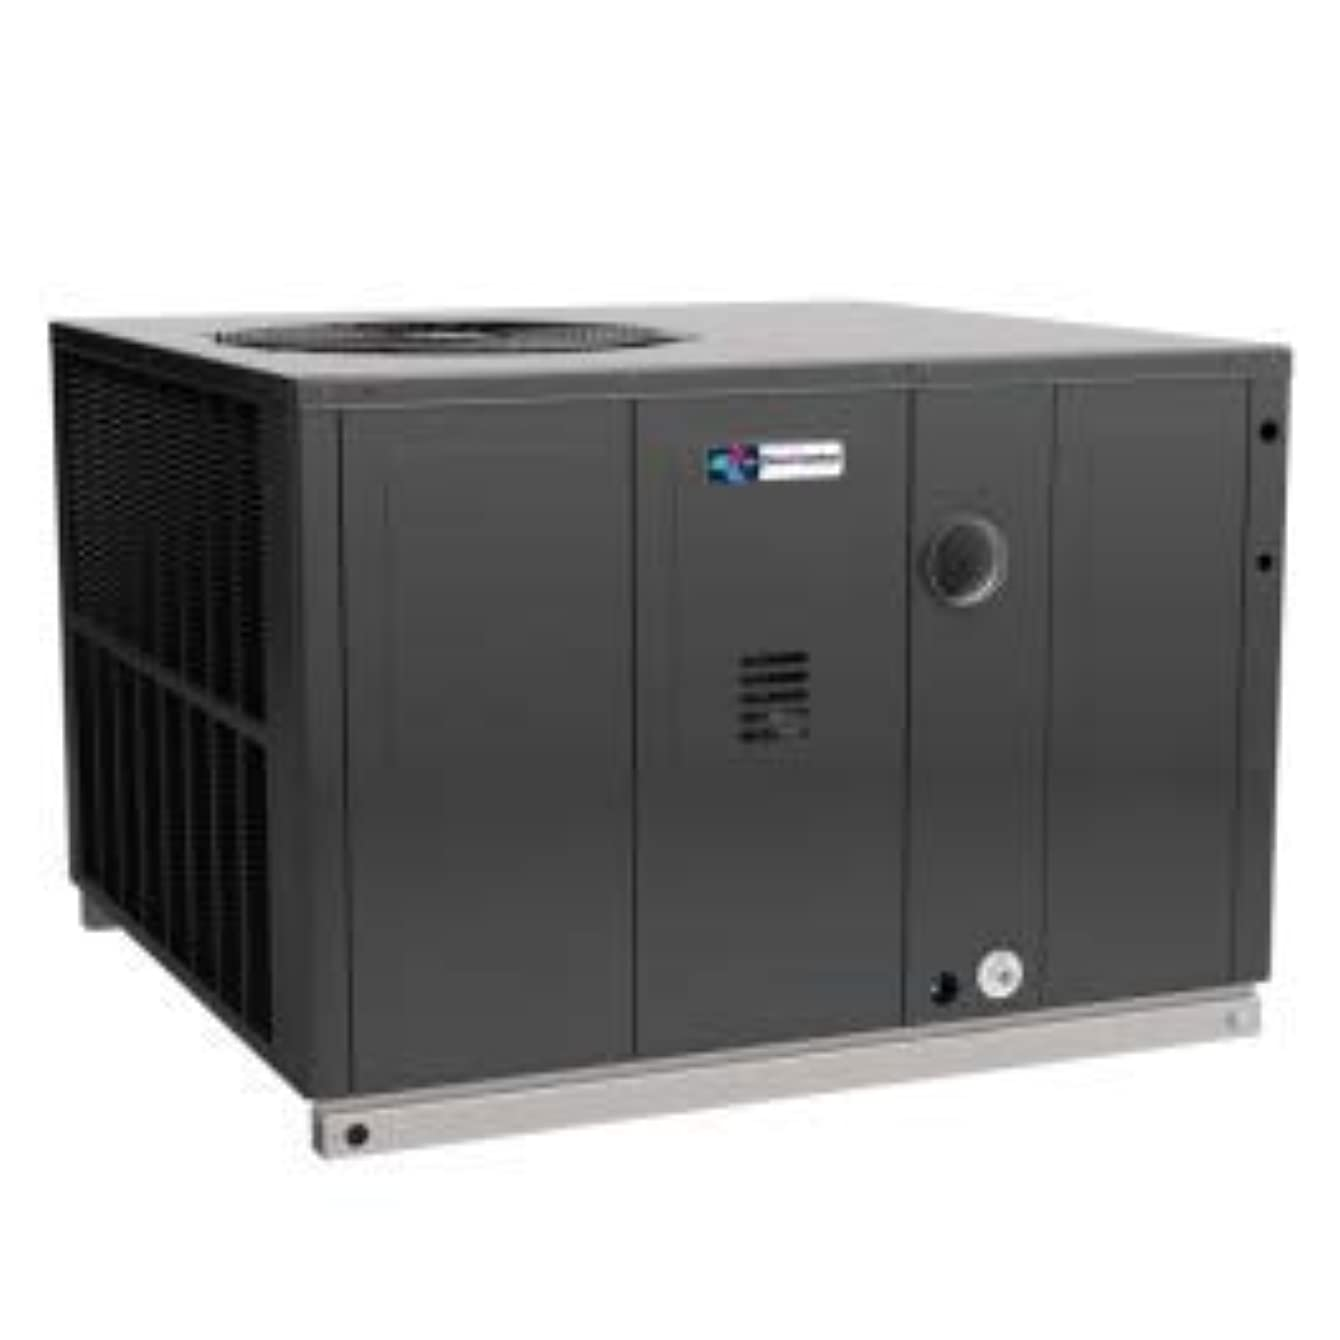 Direct Comfort 5 Ton 14 Seer 100,000 Btu 81% Afue Gas Package Air Conditioner DC-GPG1460100M41